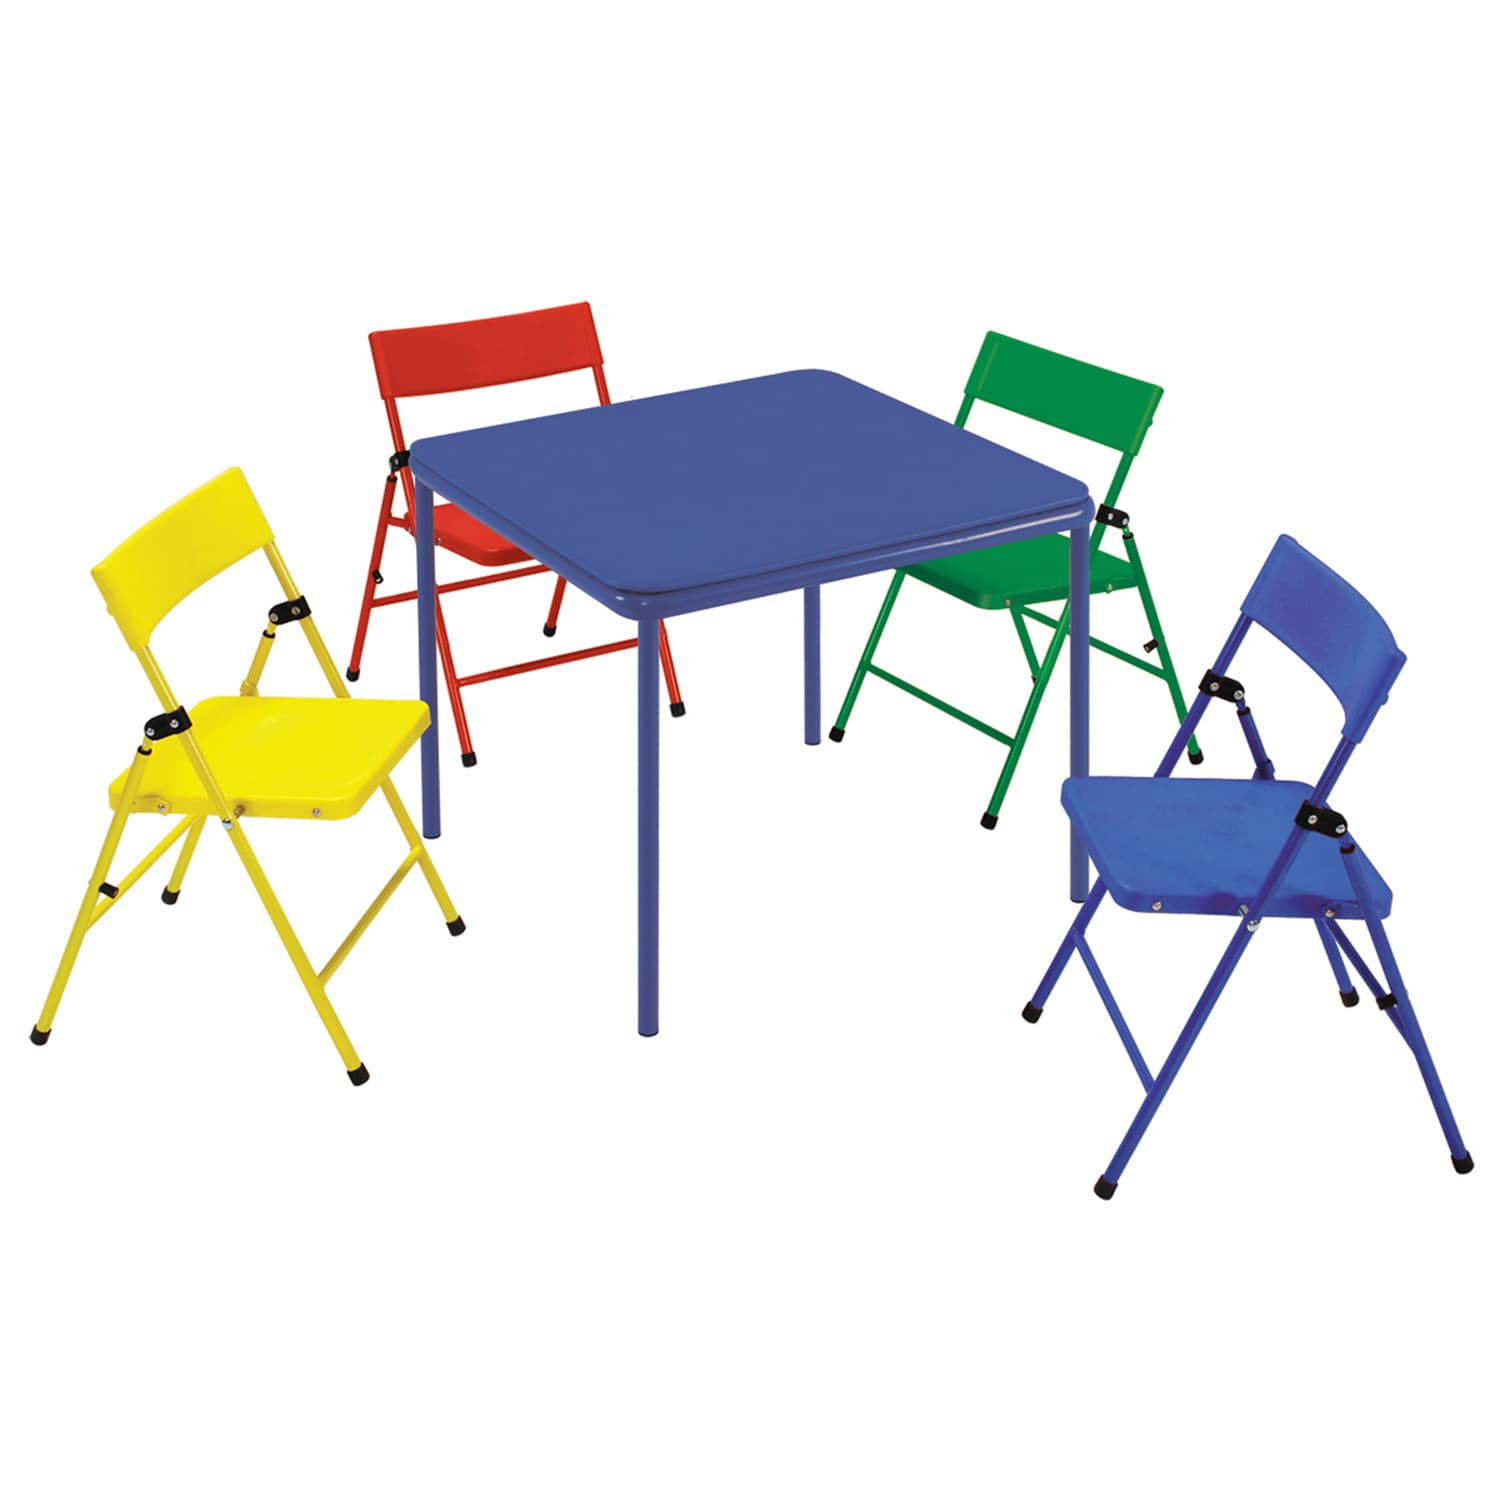 Kids Folding Chair Cosco Kid 39s 5 Piece Colored Folding Chair And Table Set